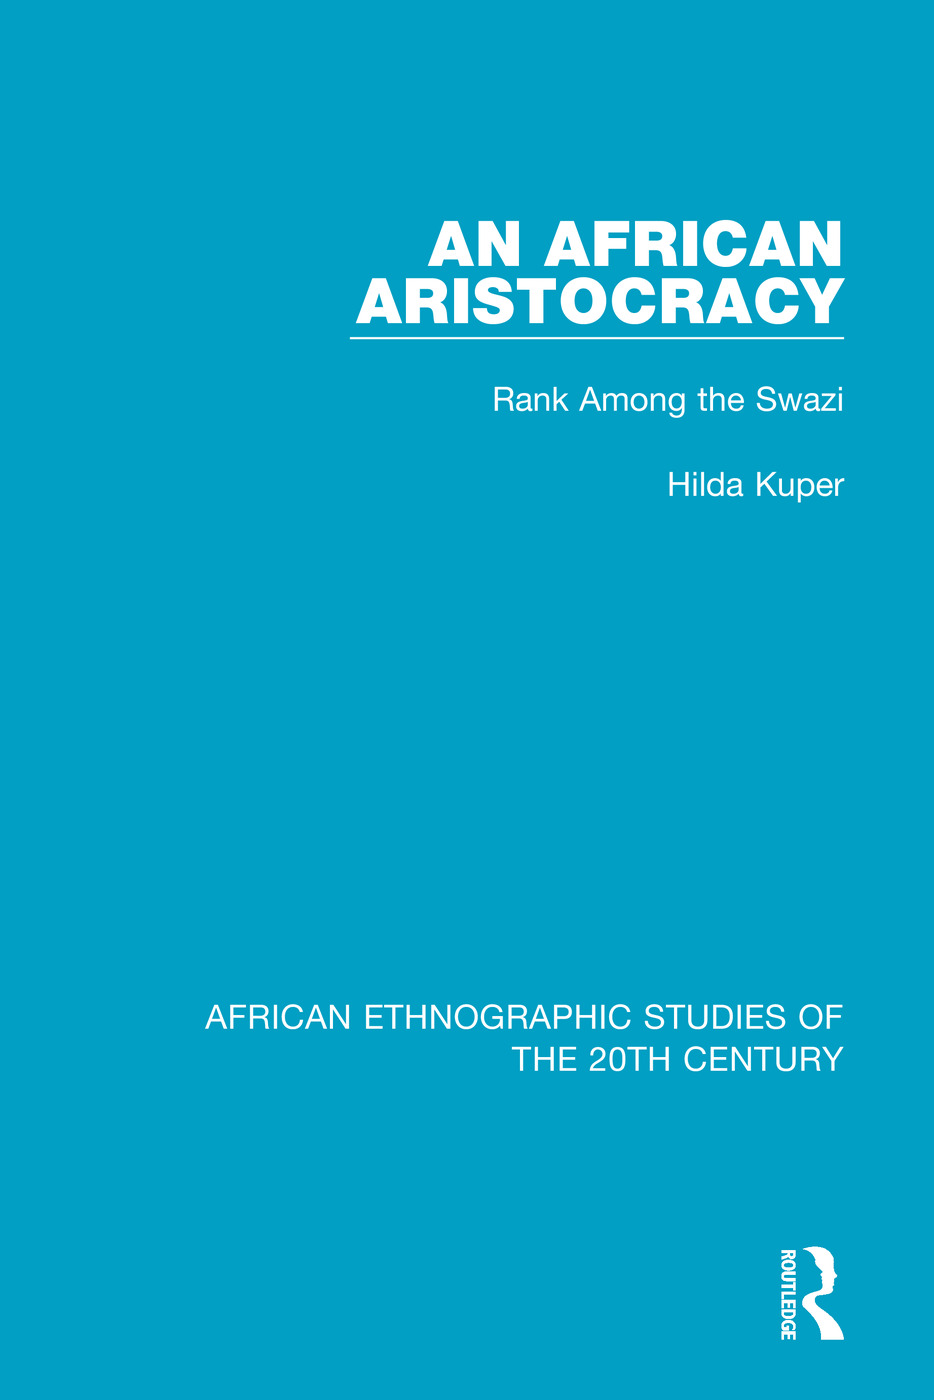 An African Aristocracy: Rank Among the Swazi book cover